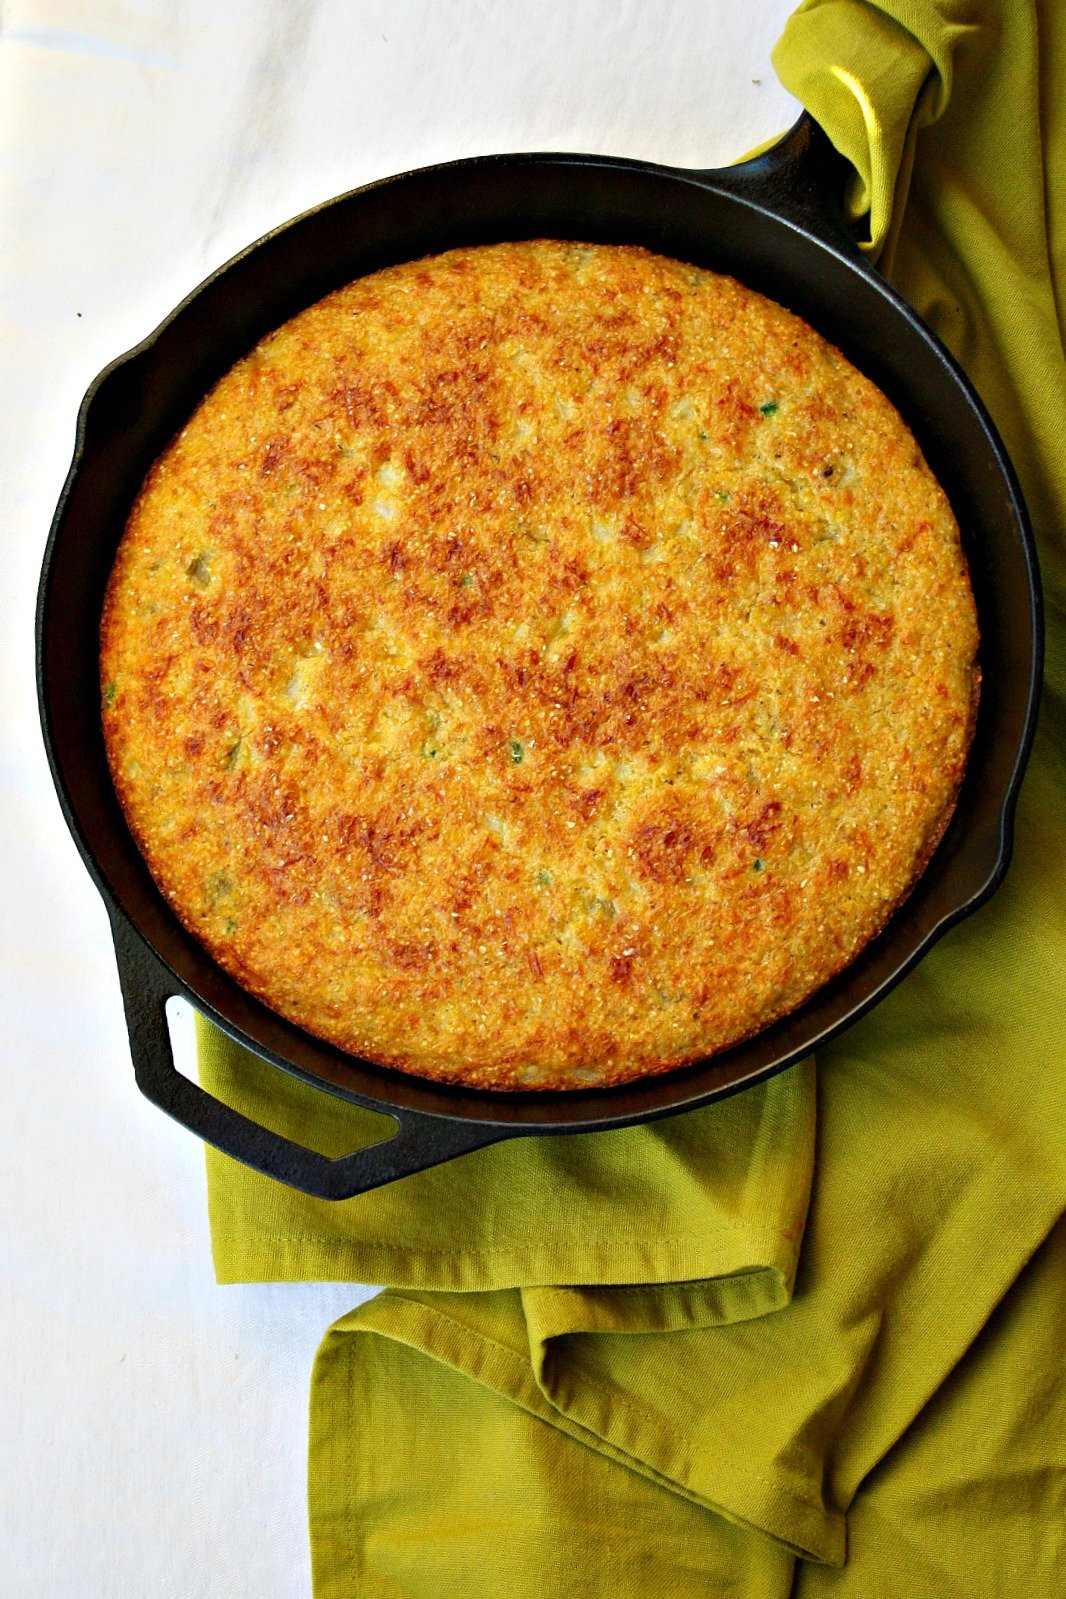 Super moist corn bread baked in a cast iron skillet